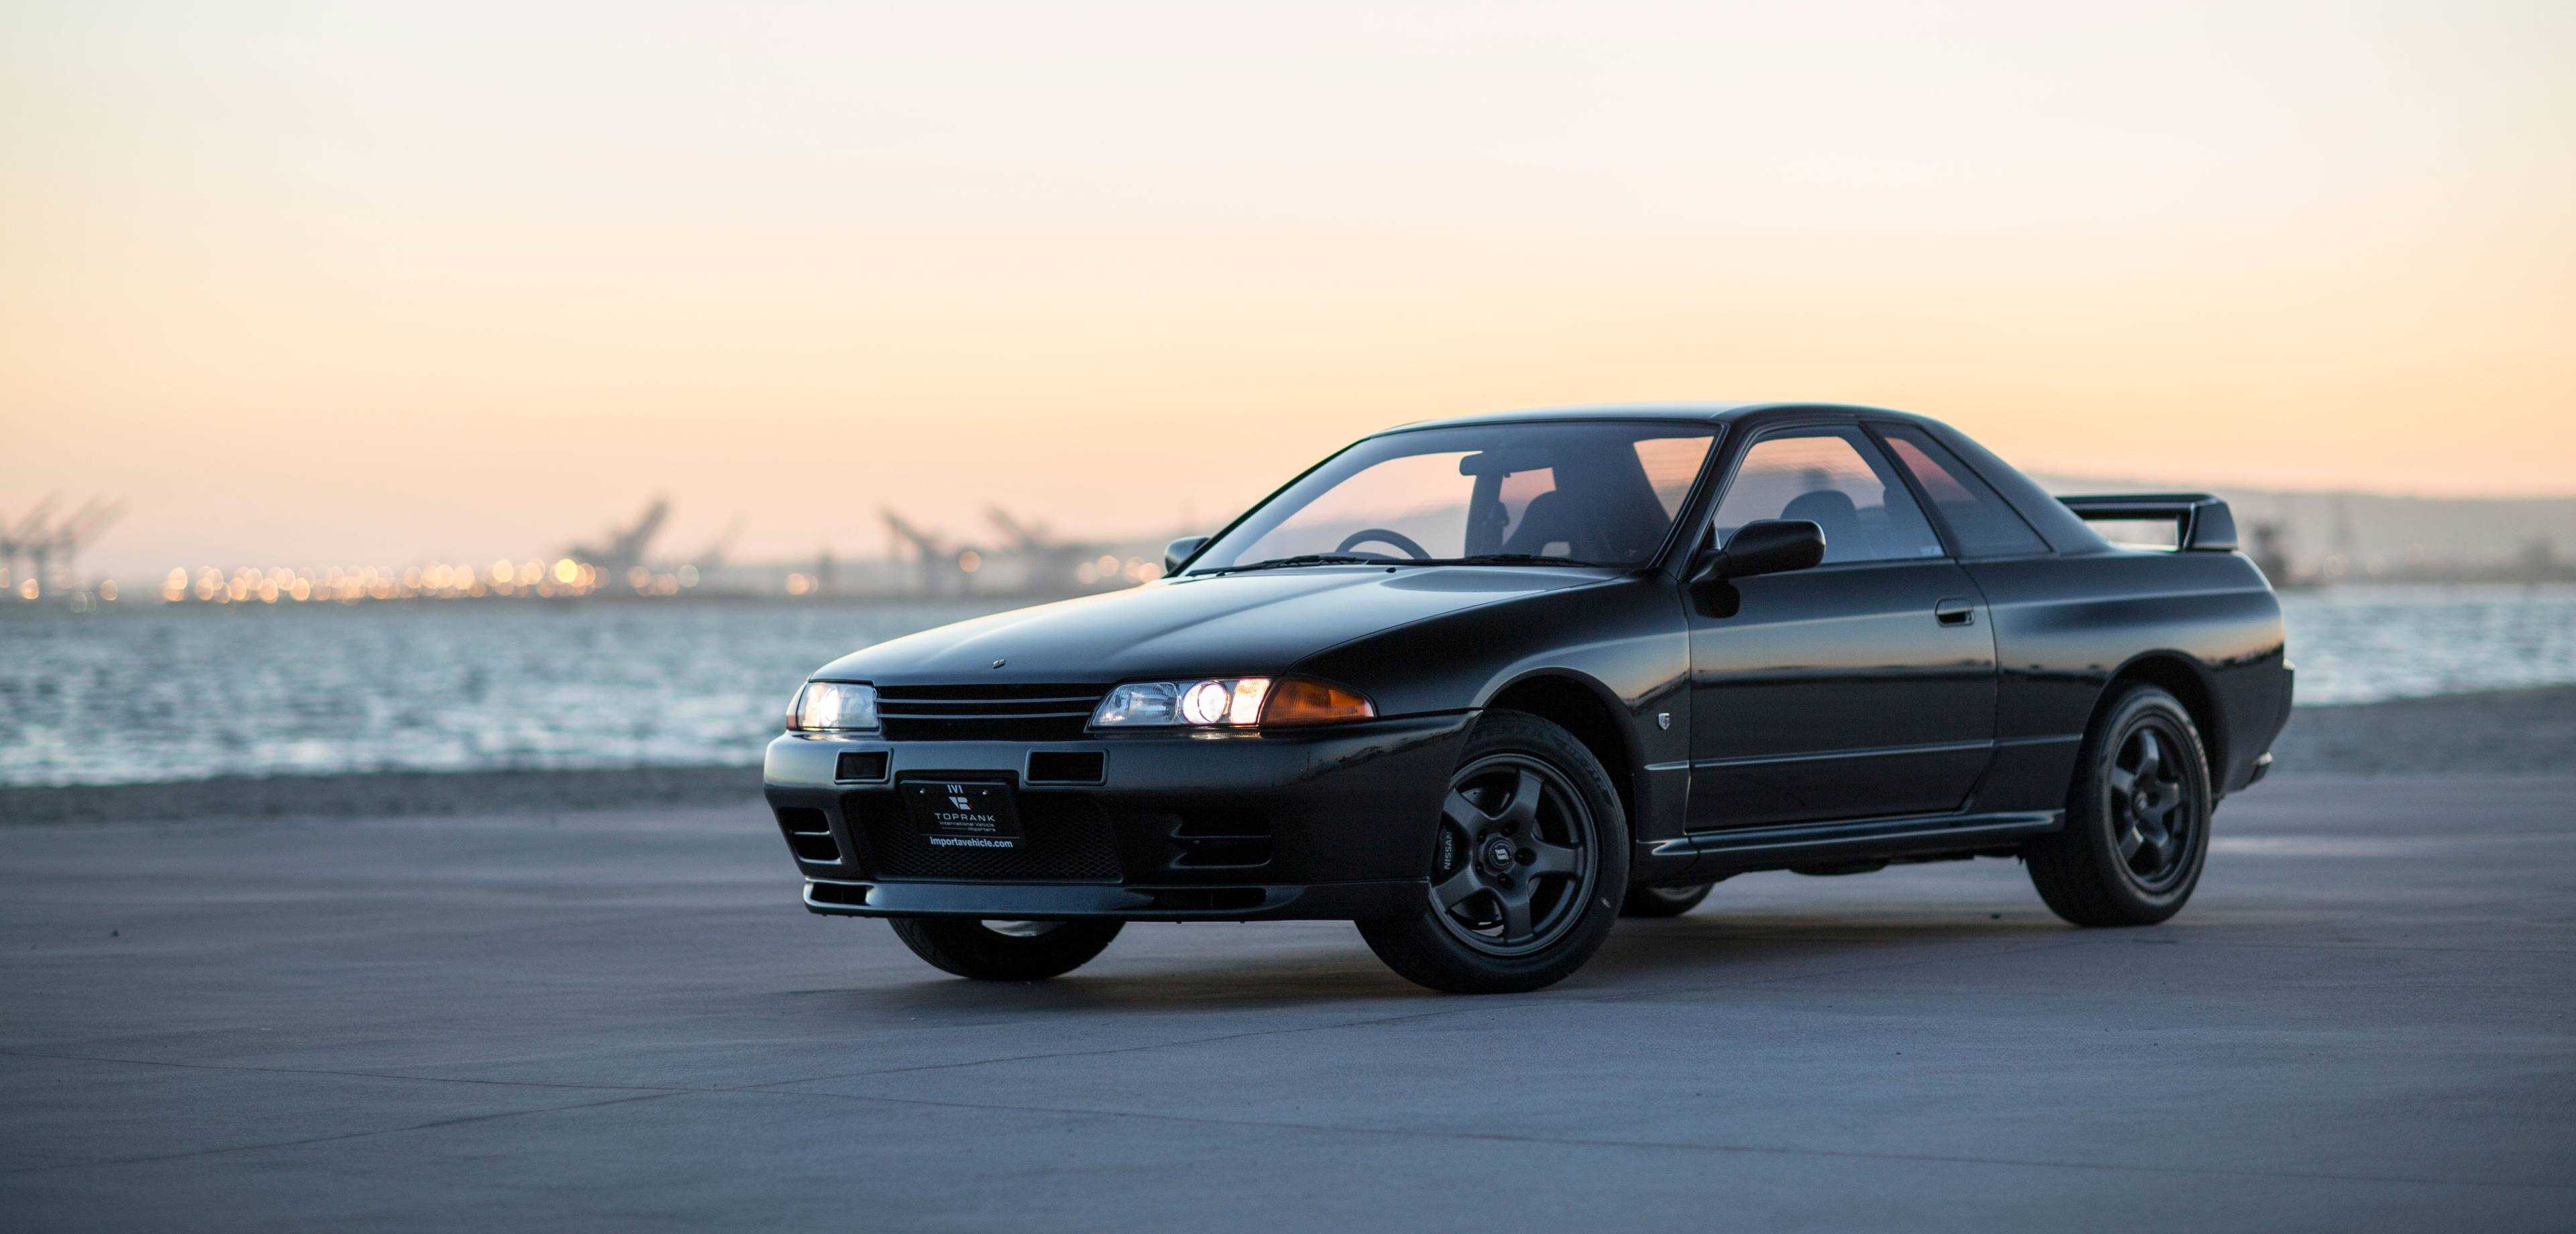 Here's your definitive Nissan Skyline R32 GT-R buyer's guide